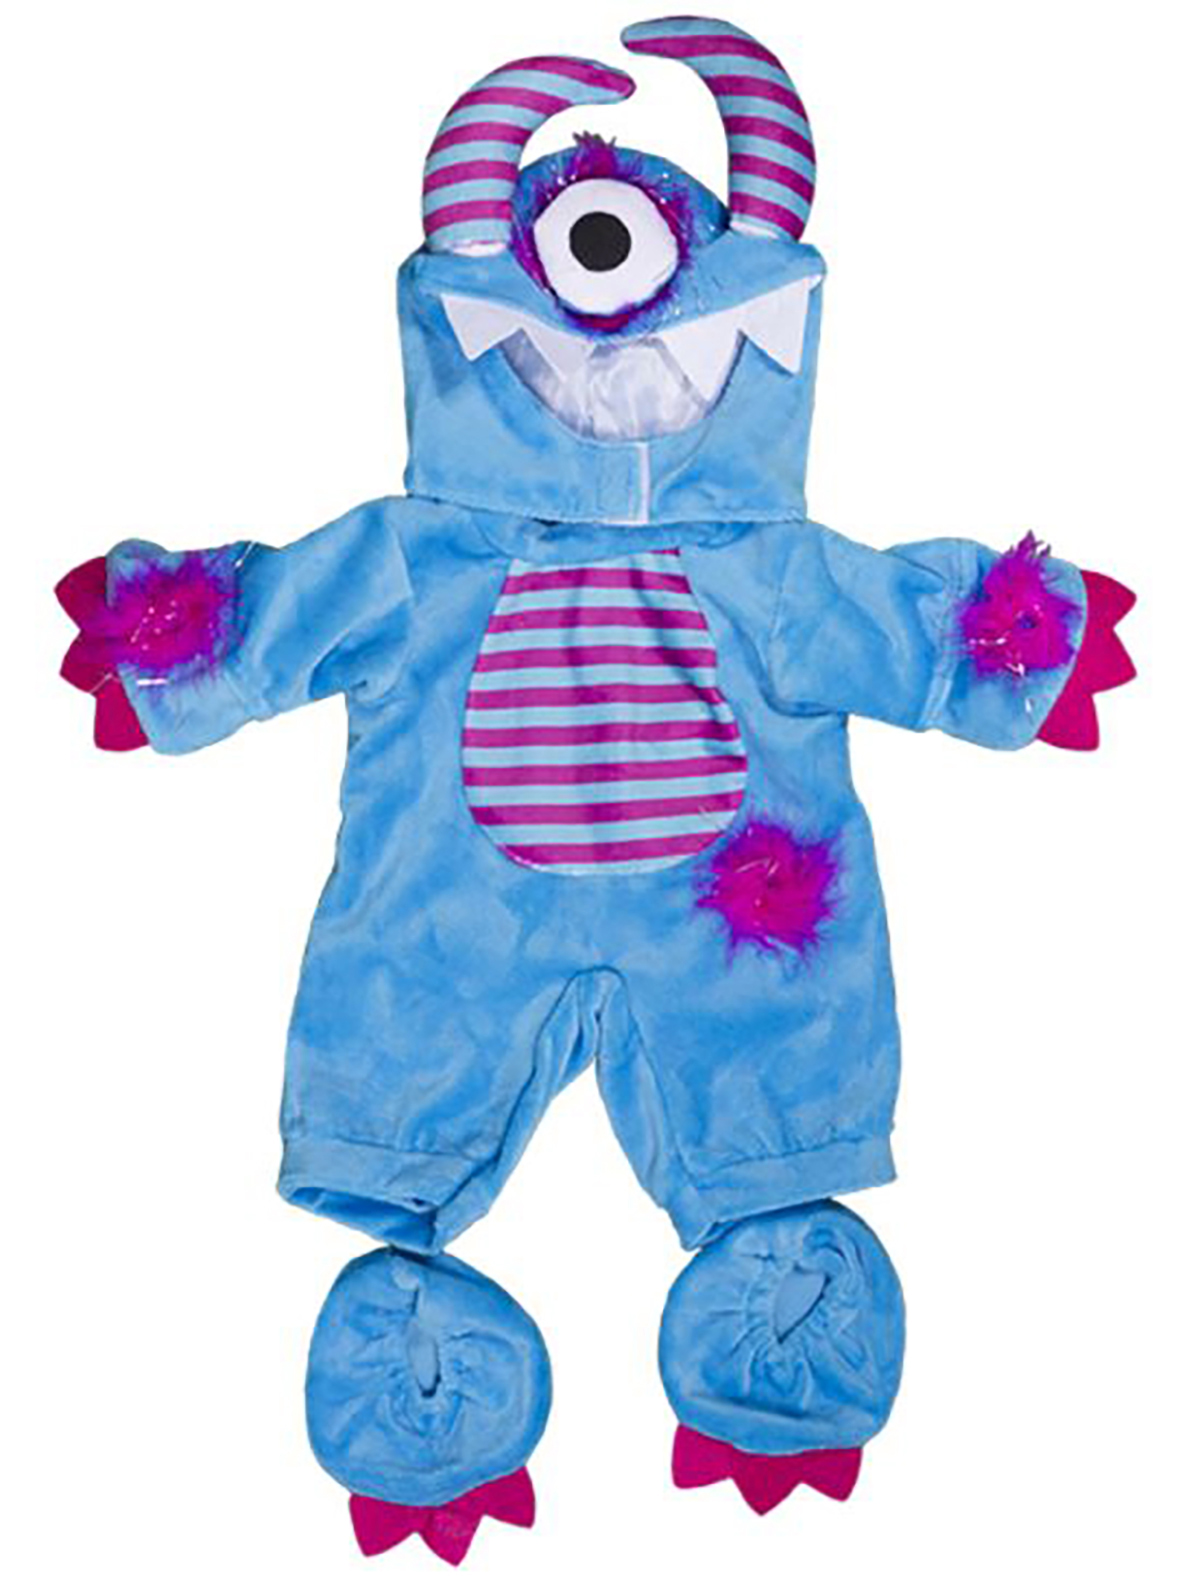 17abbac6 Details about One Eyed Monster Costume Teddy Bear Clothes Fits Most 8